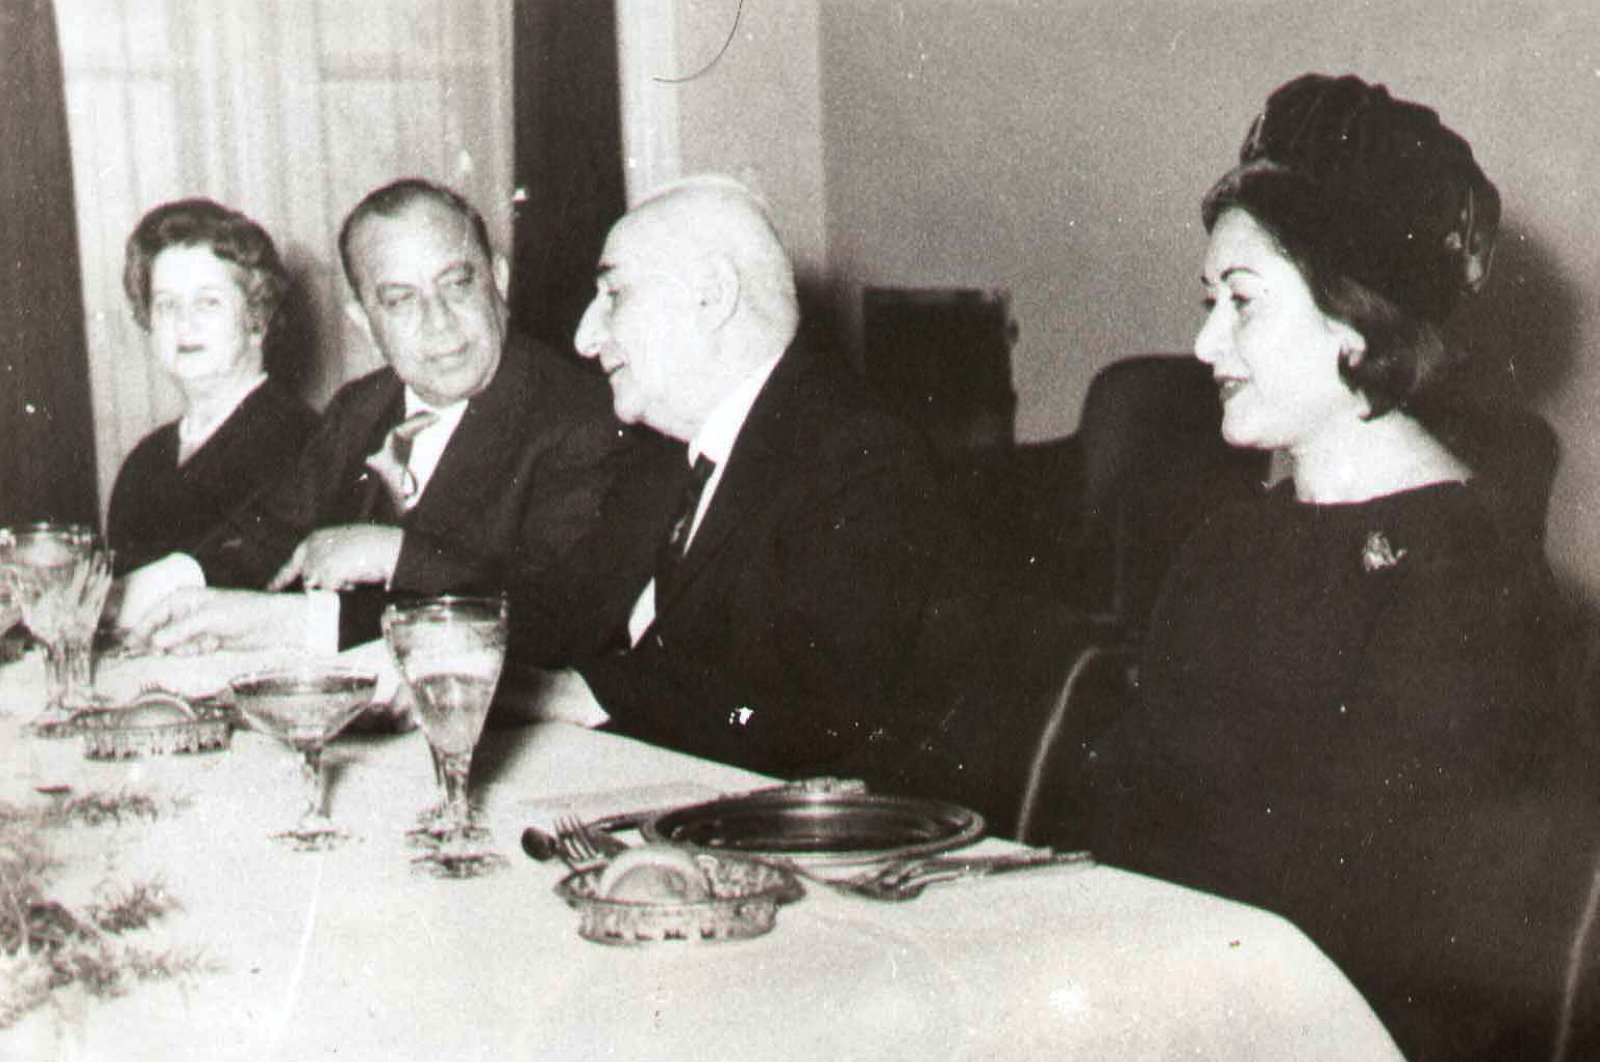 This undated file photo shows Süheyla Küçük (far L) and her husband Dr. Fazıl Küçük (2nd from L) attending a dinner alongside then-Turkish President Cemal Gürsel (2nd from R) and his wife Melahat Gürsel (far R). (DHA Photo)